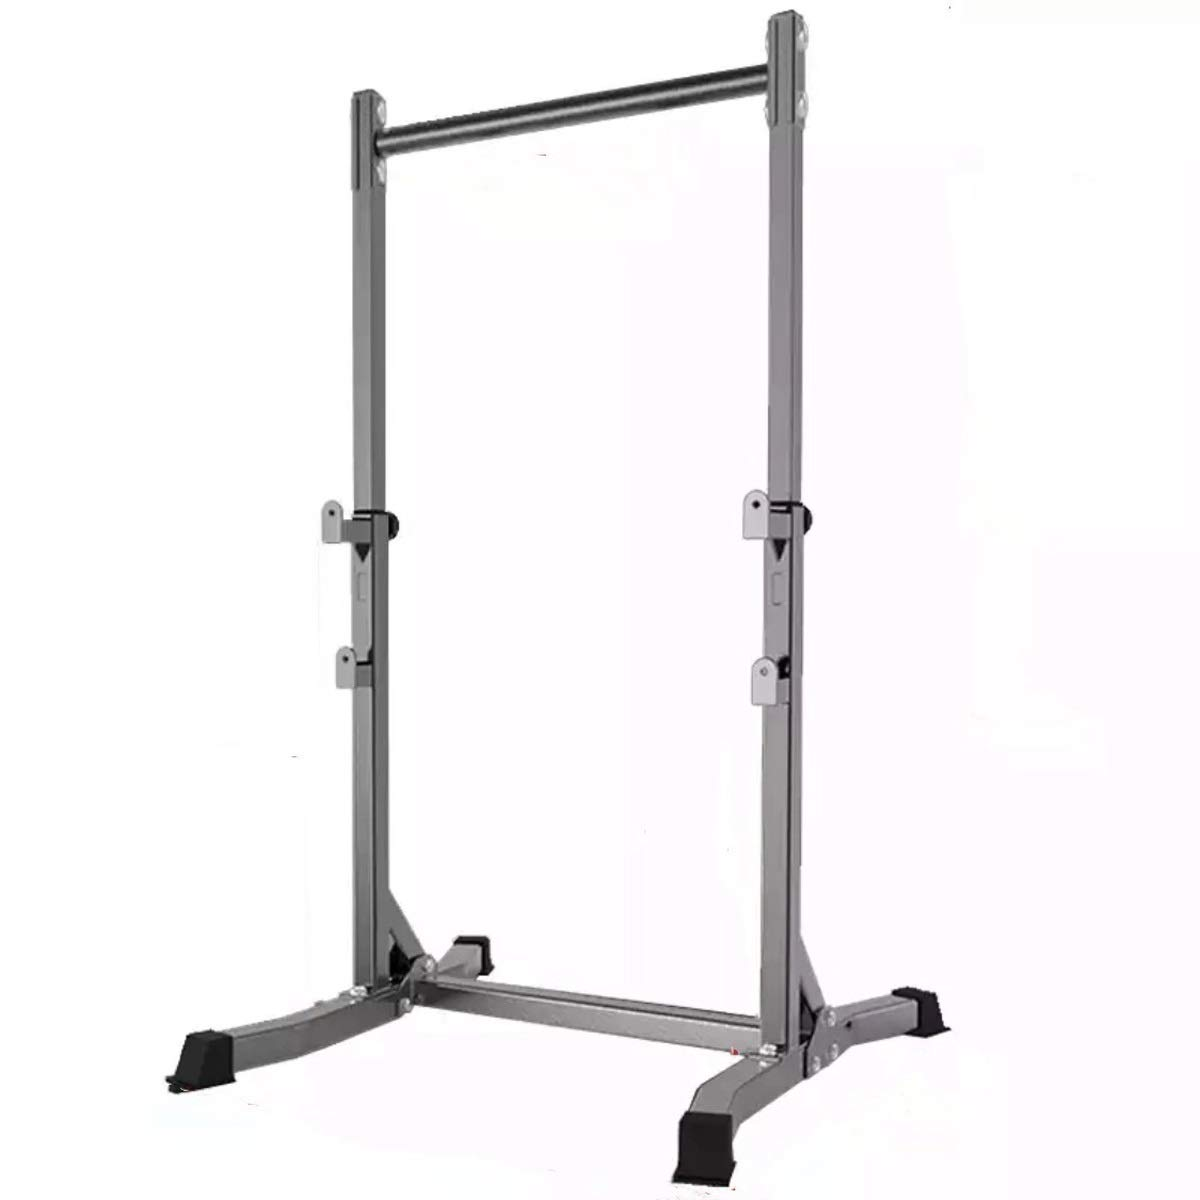 Indoor Horizontal Bar Commercial Multi-Function Pull-up Device Household Squat Bench Press Barbell Rack Fitness Training Equipment Commercial Single-bar Rack by Baianju